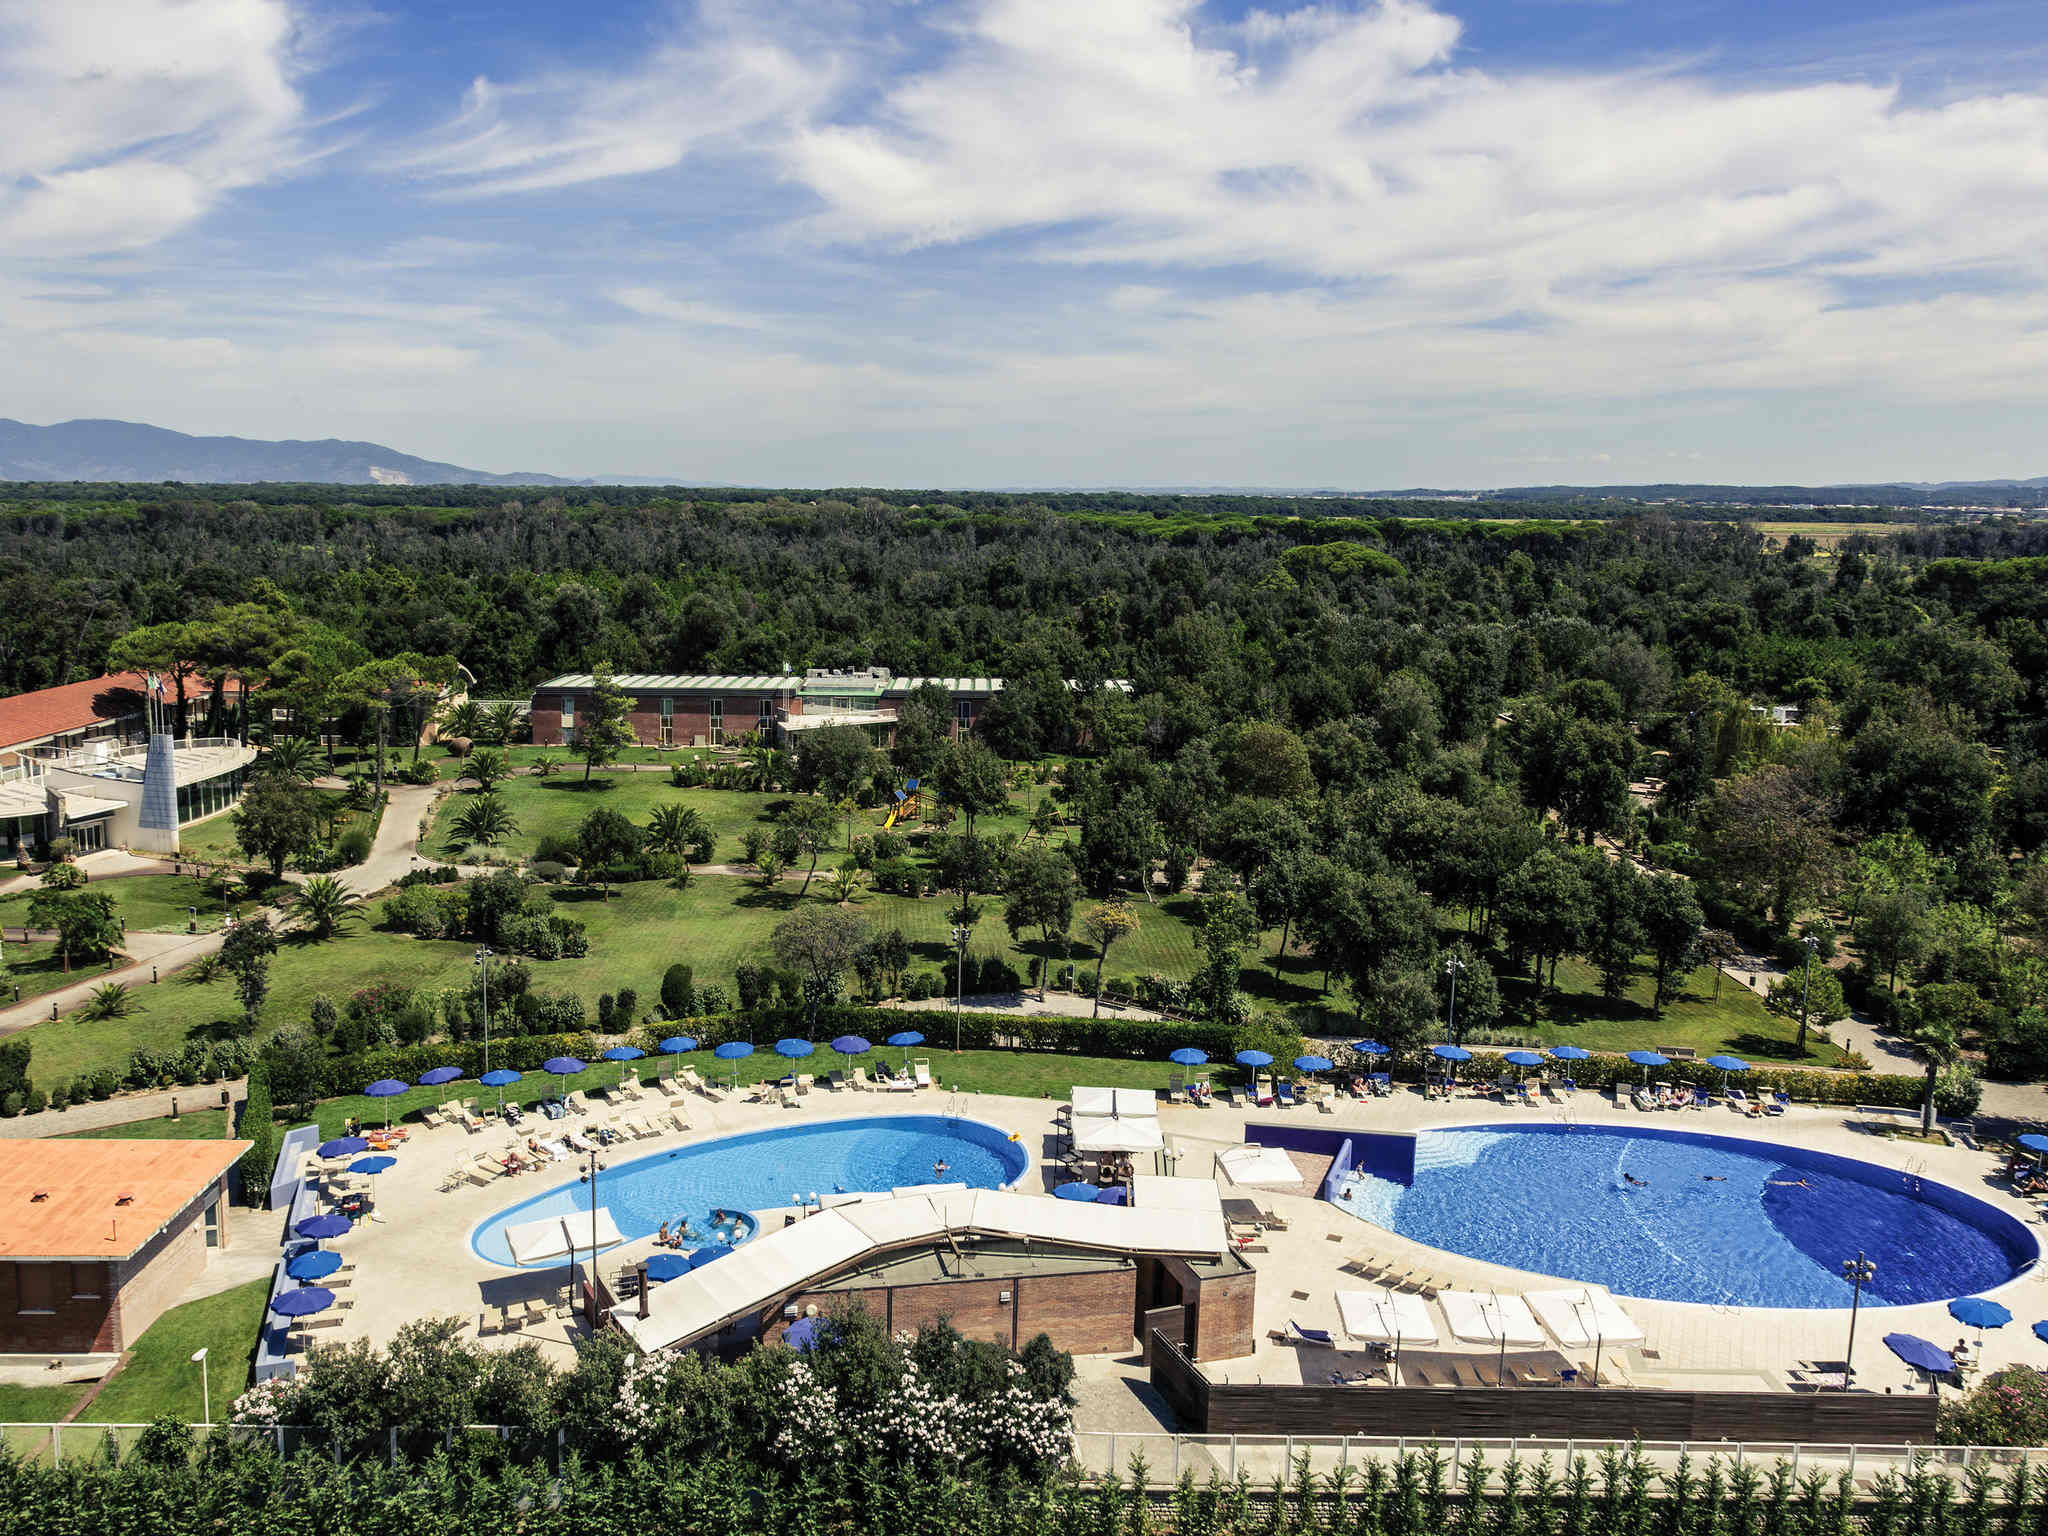 Hotel – Hotel Mercure Tirrenia Green Park - New Opening